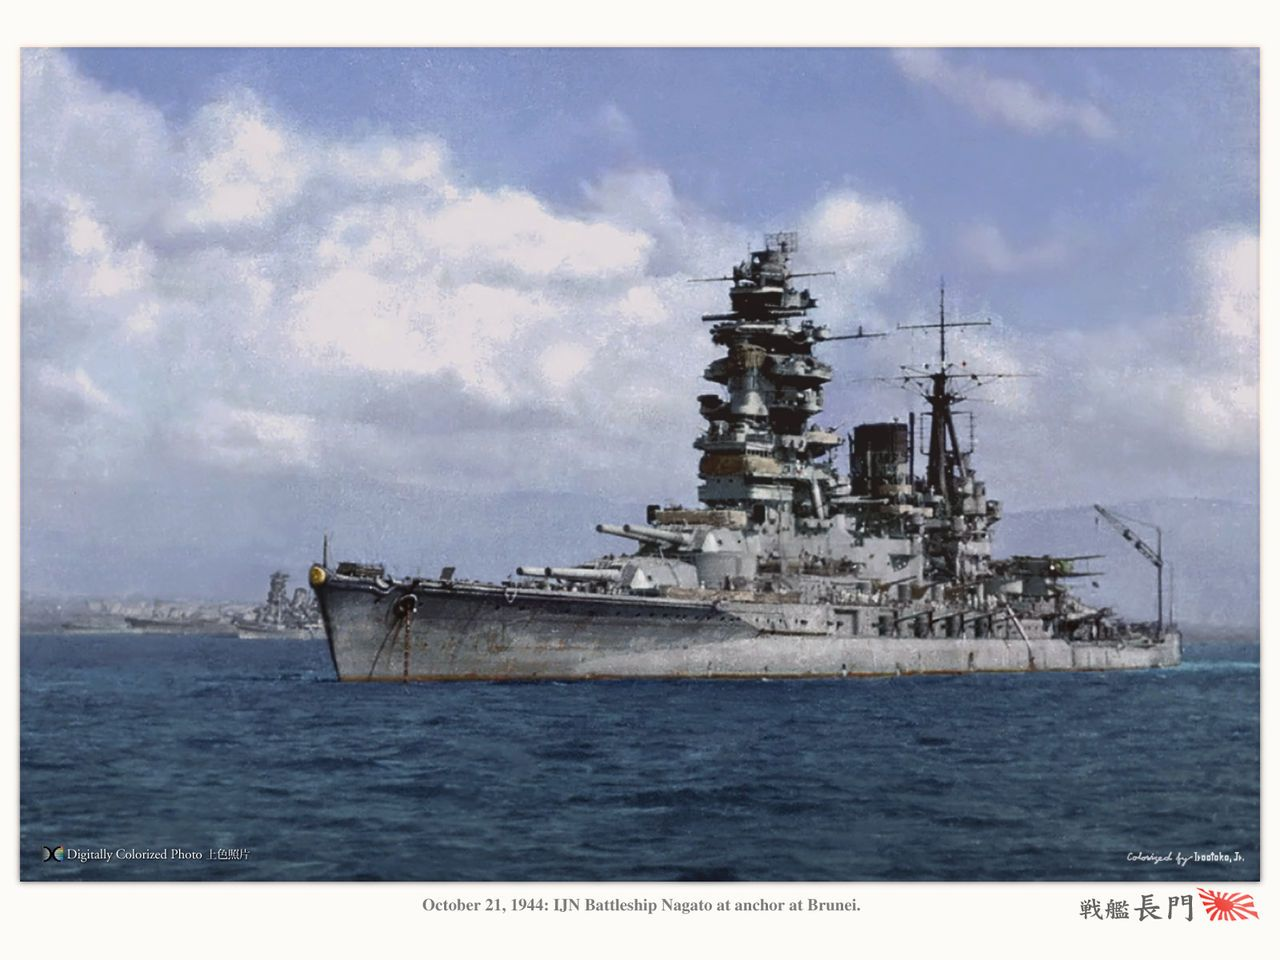 Japanese Battleship Nagato in brunei, October 1944